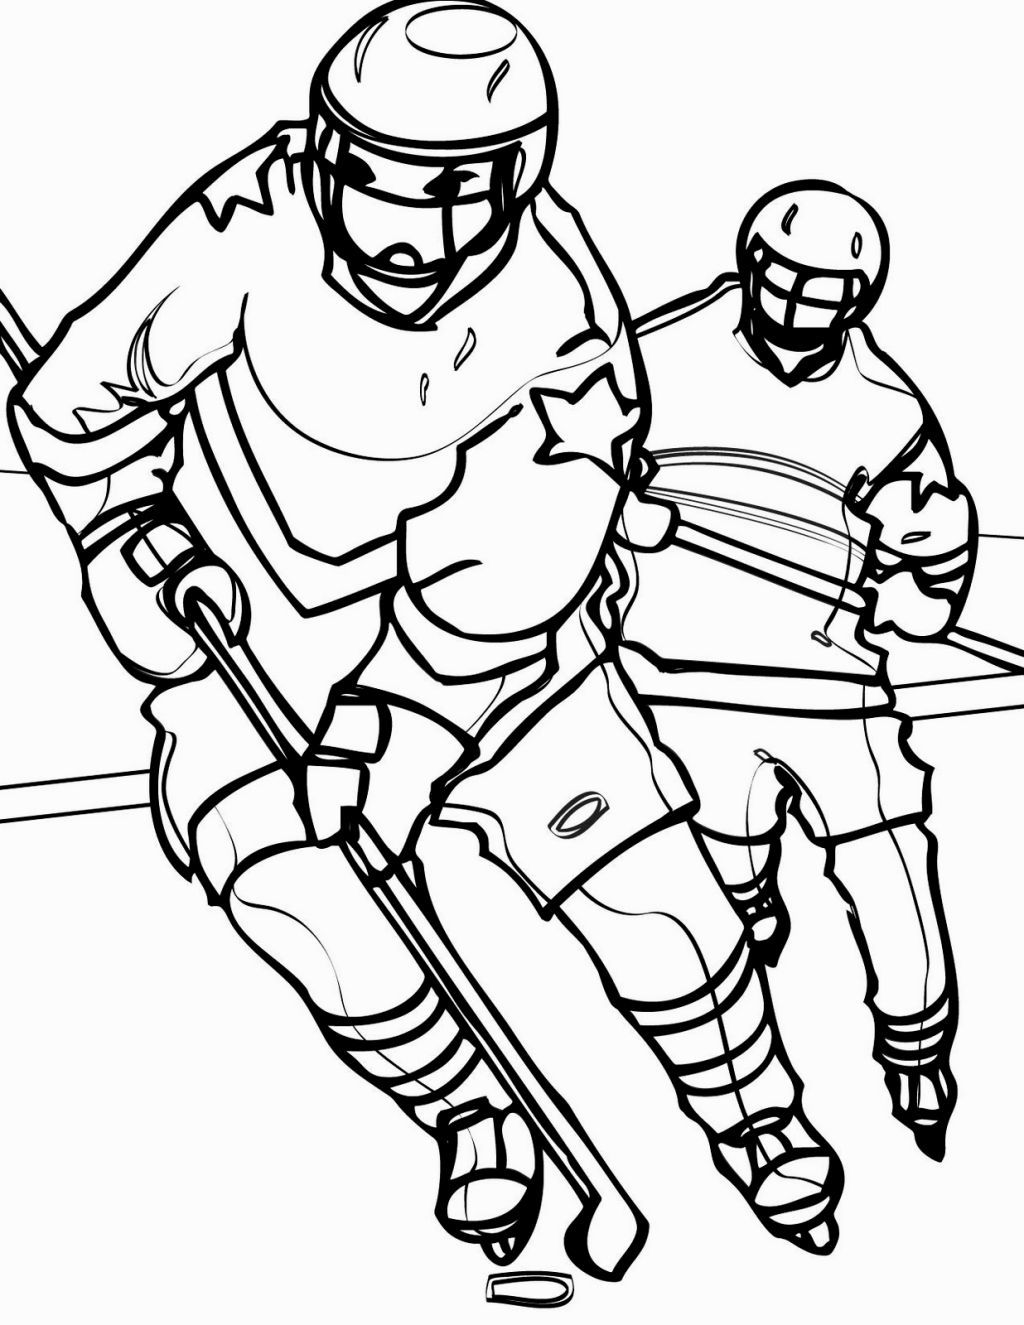 Coloring Pages Hockey | Coloring Pages | Pinterest